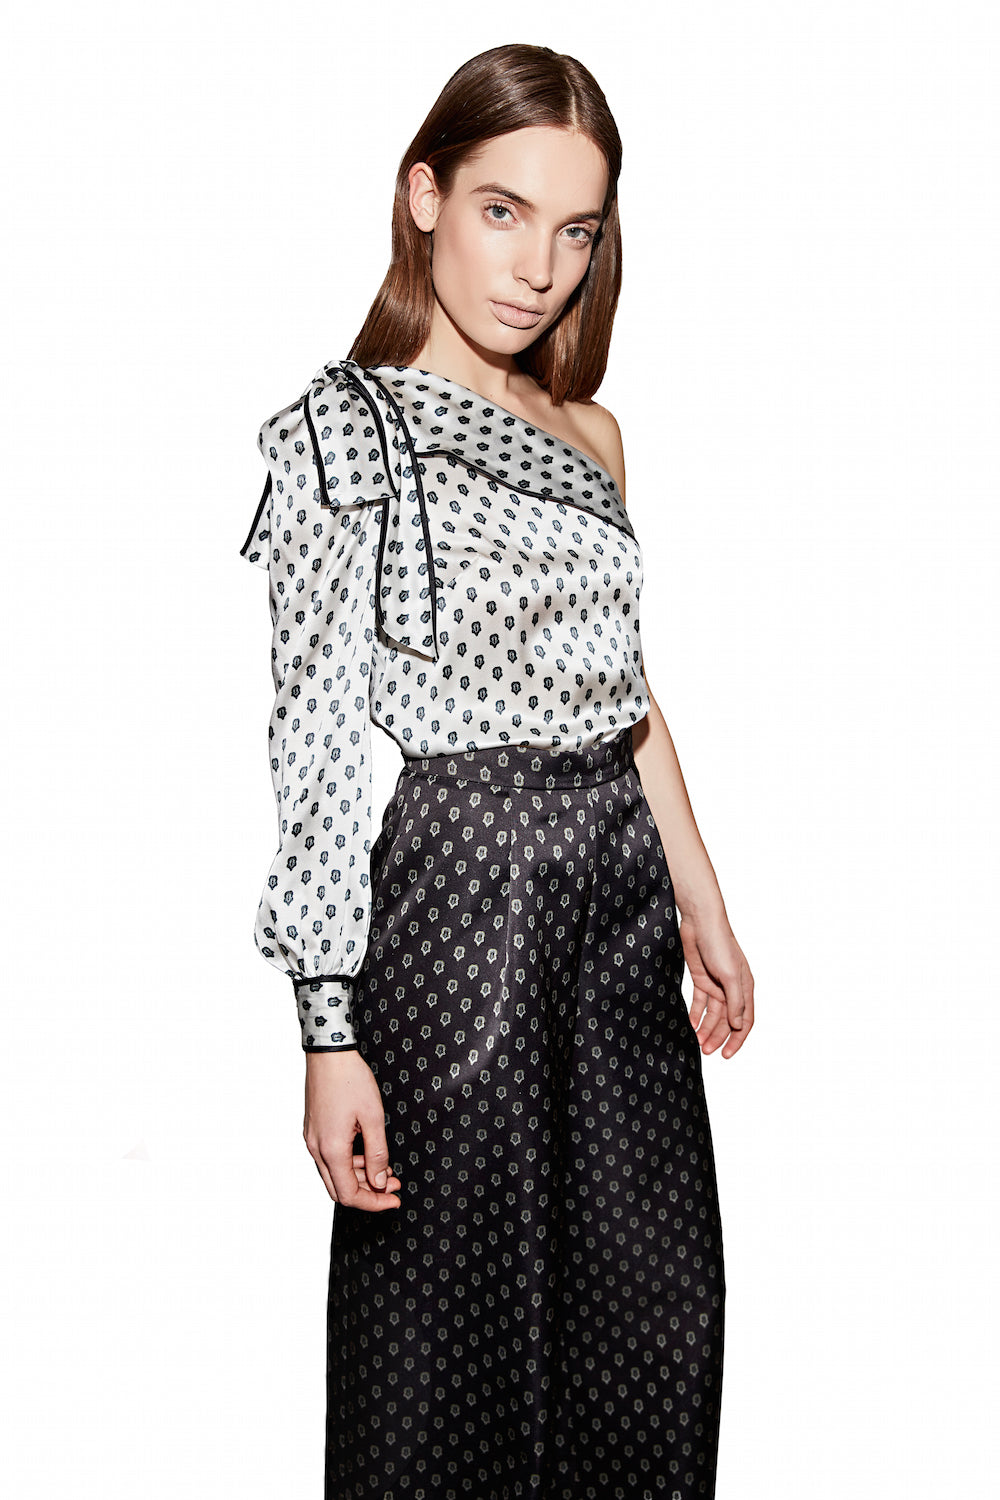 The Suki Blouse in Black & White